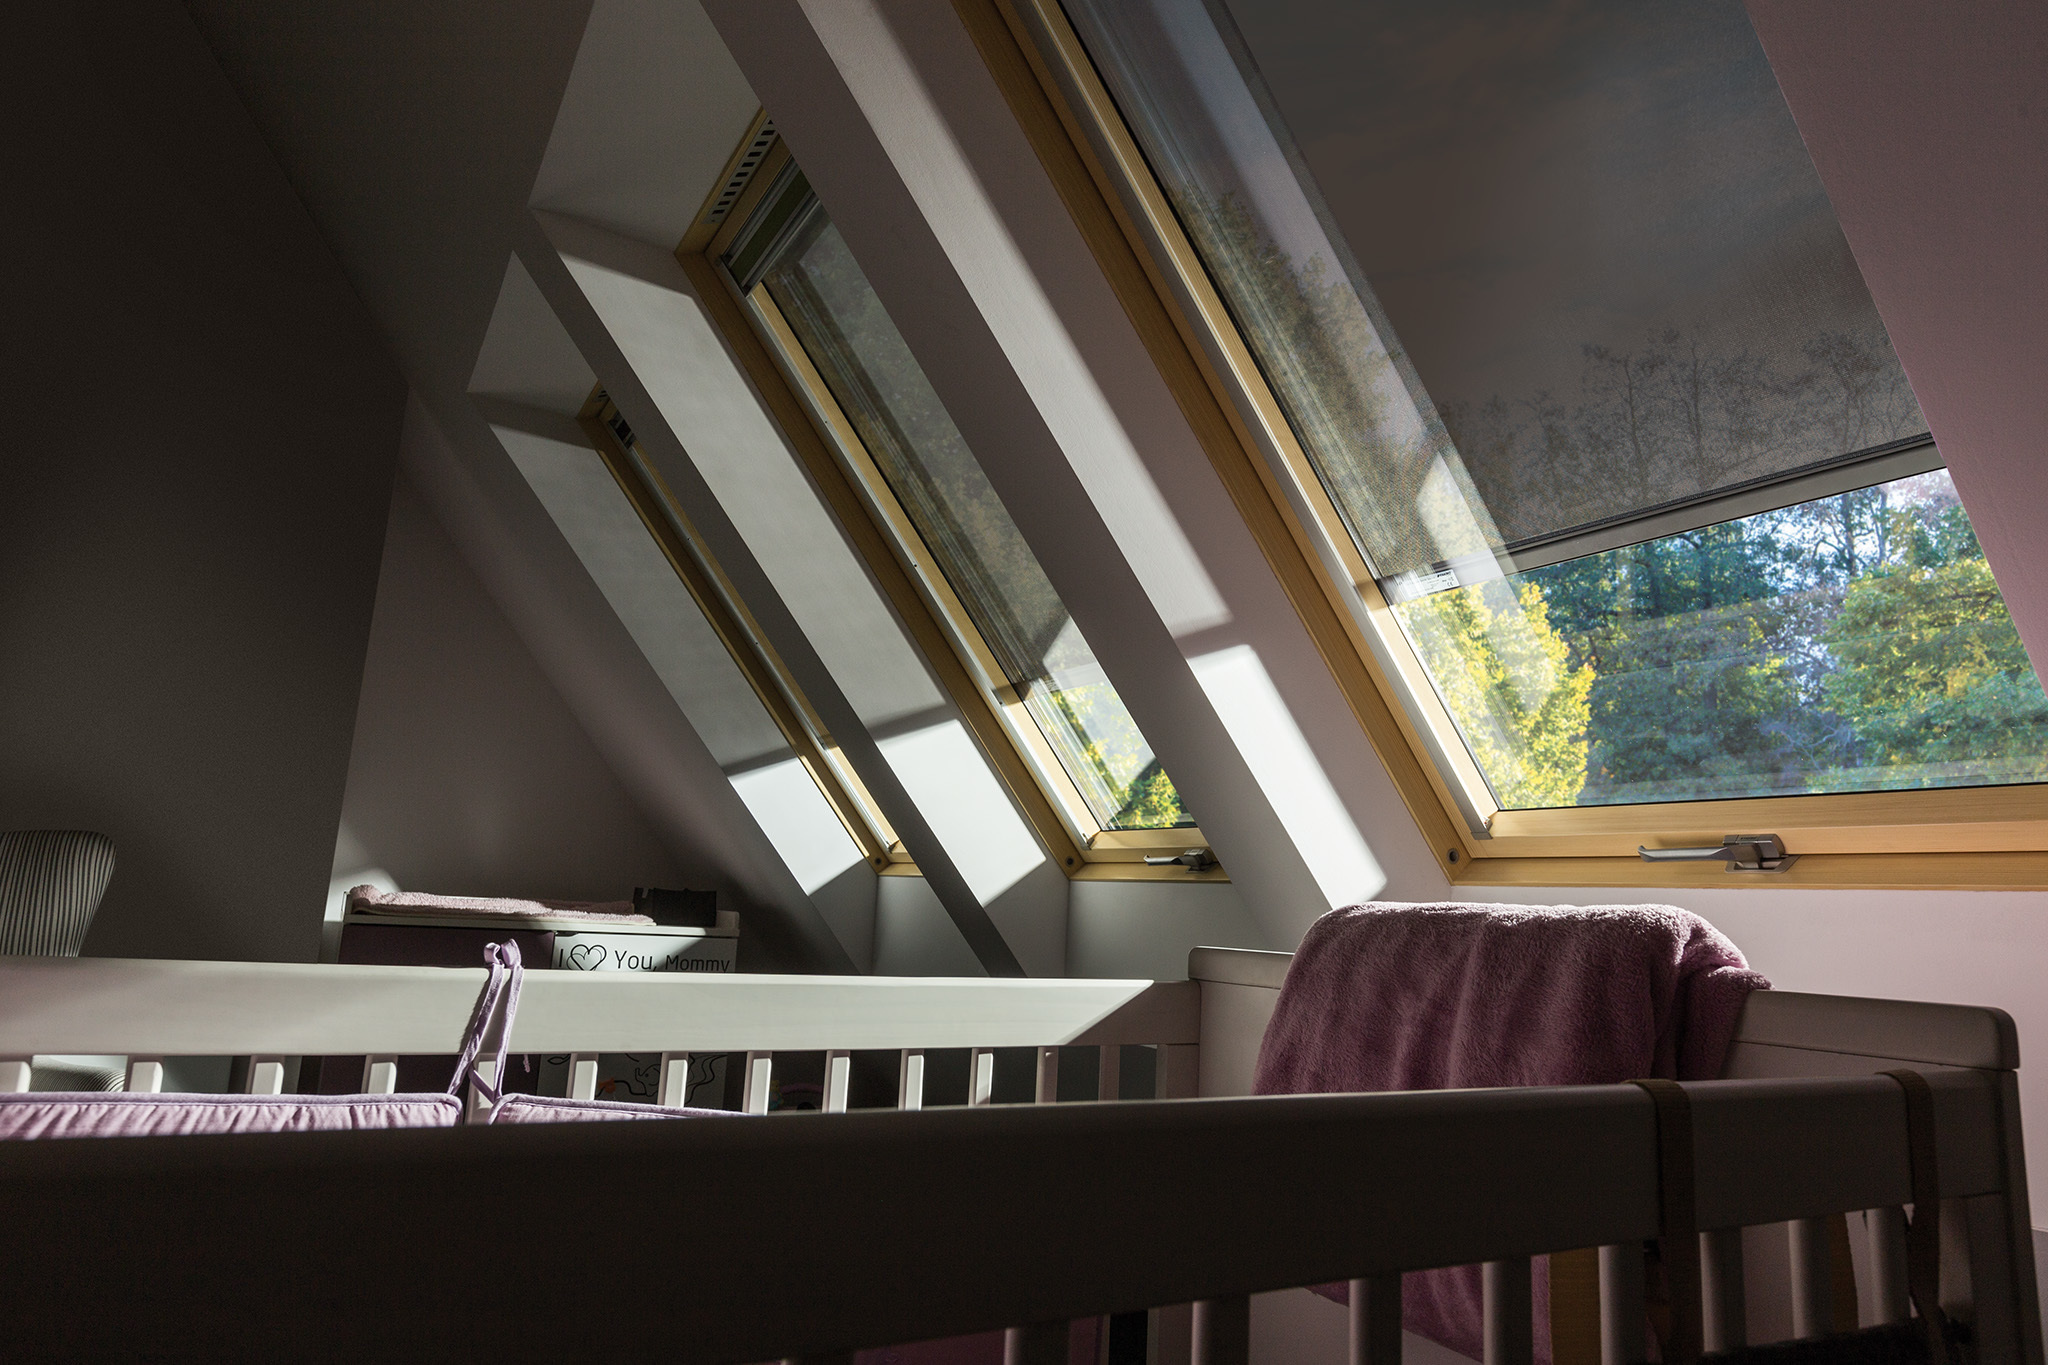 Internal View of Awning Blinds